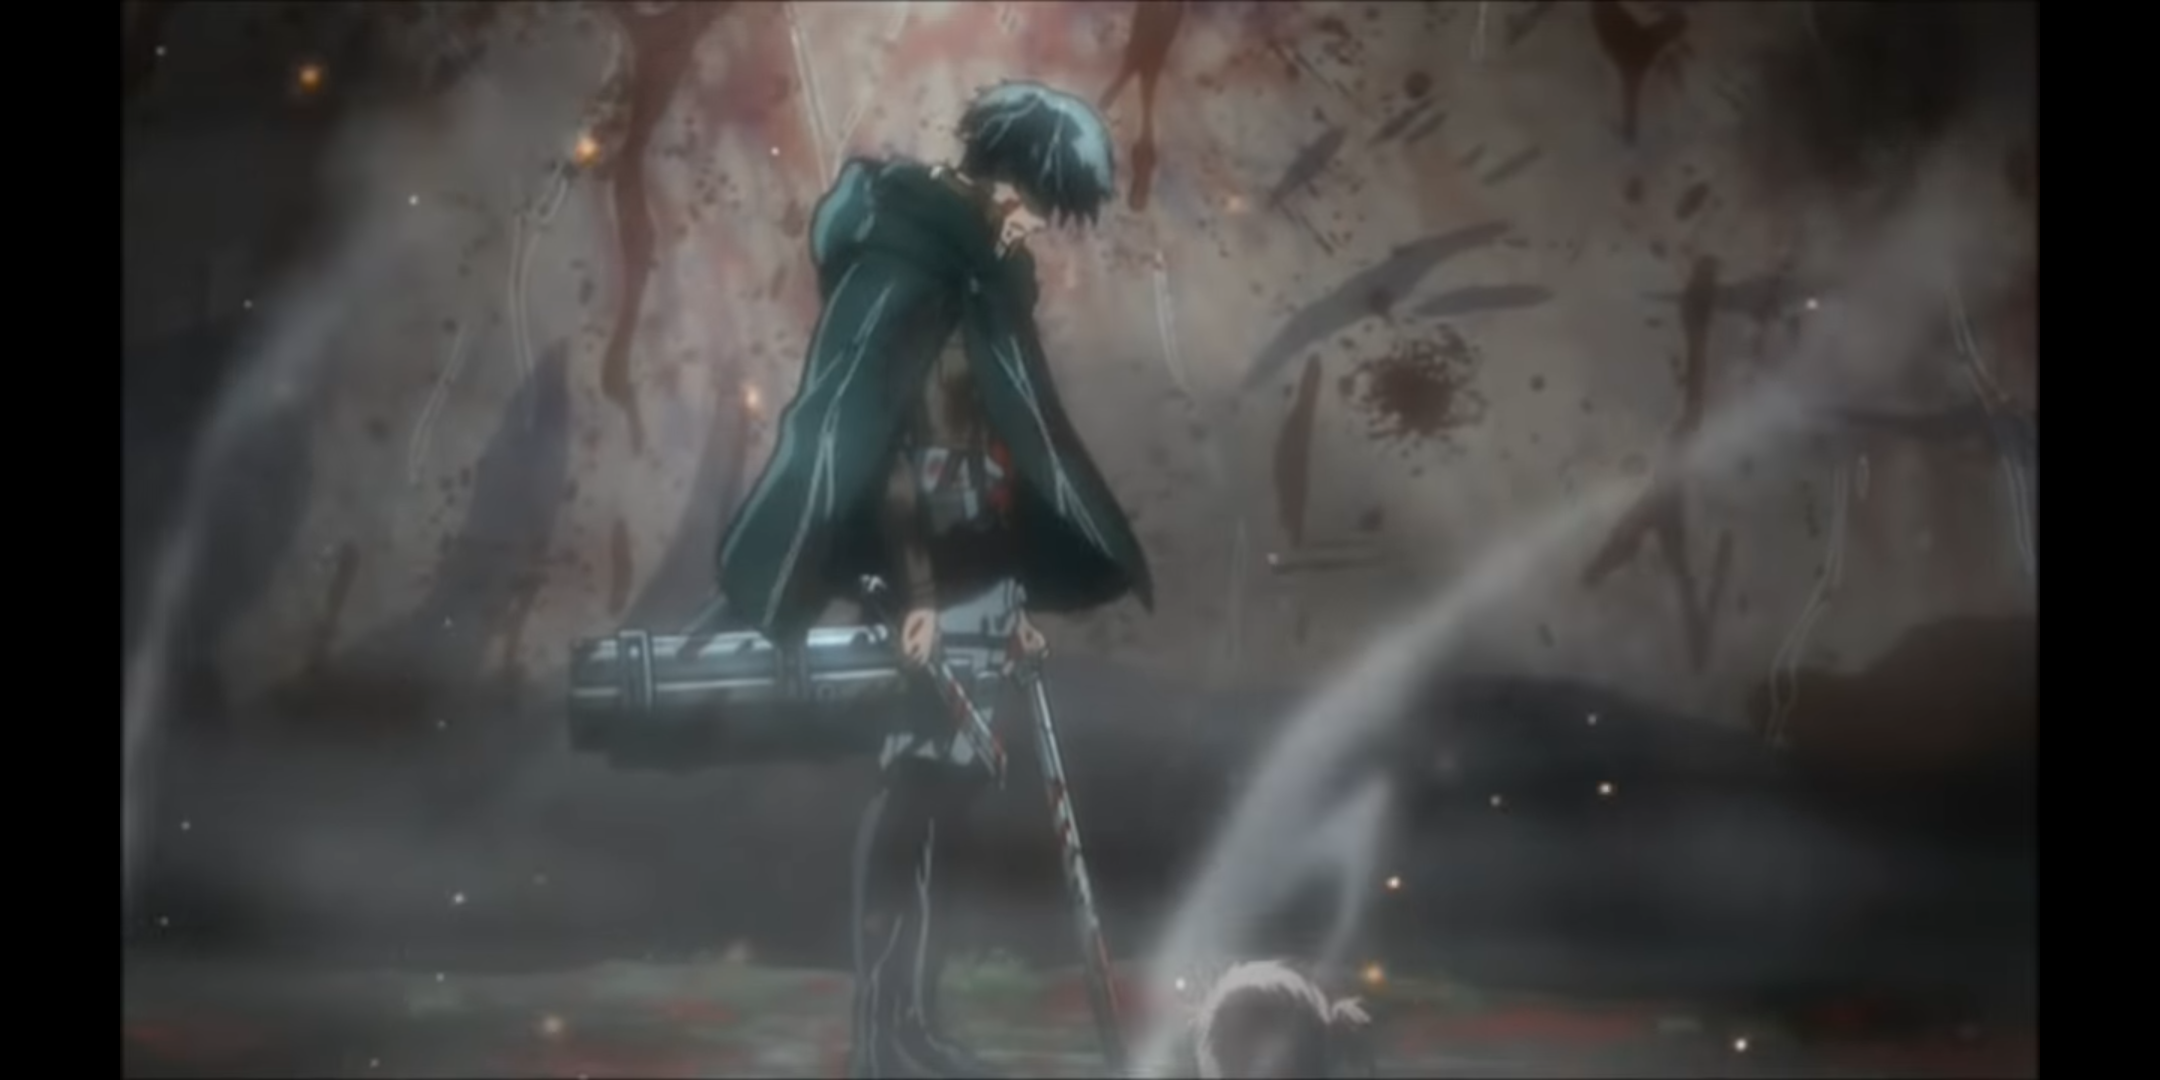 The first time I saw Levi crying